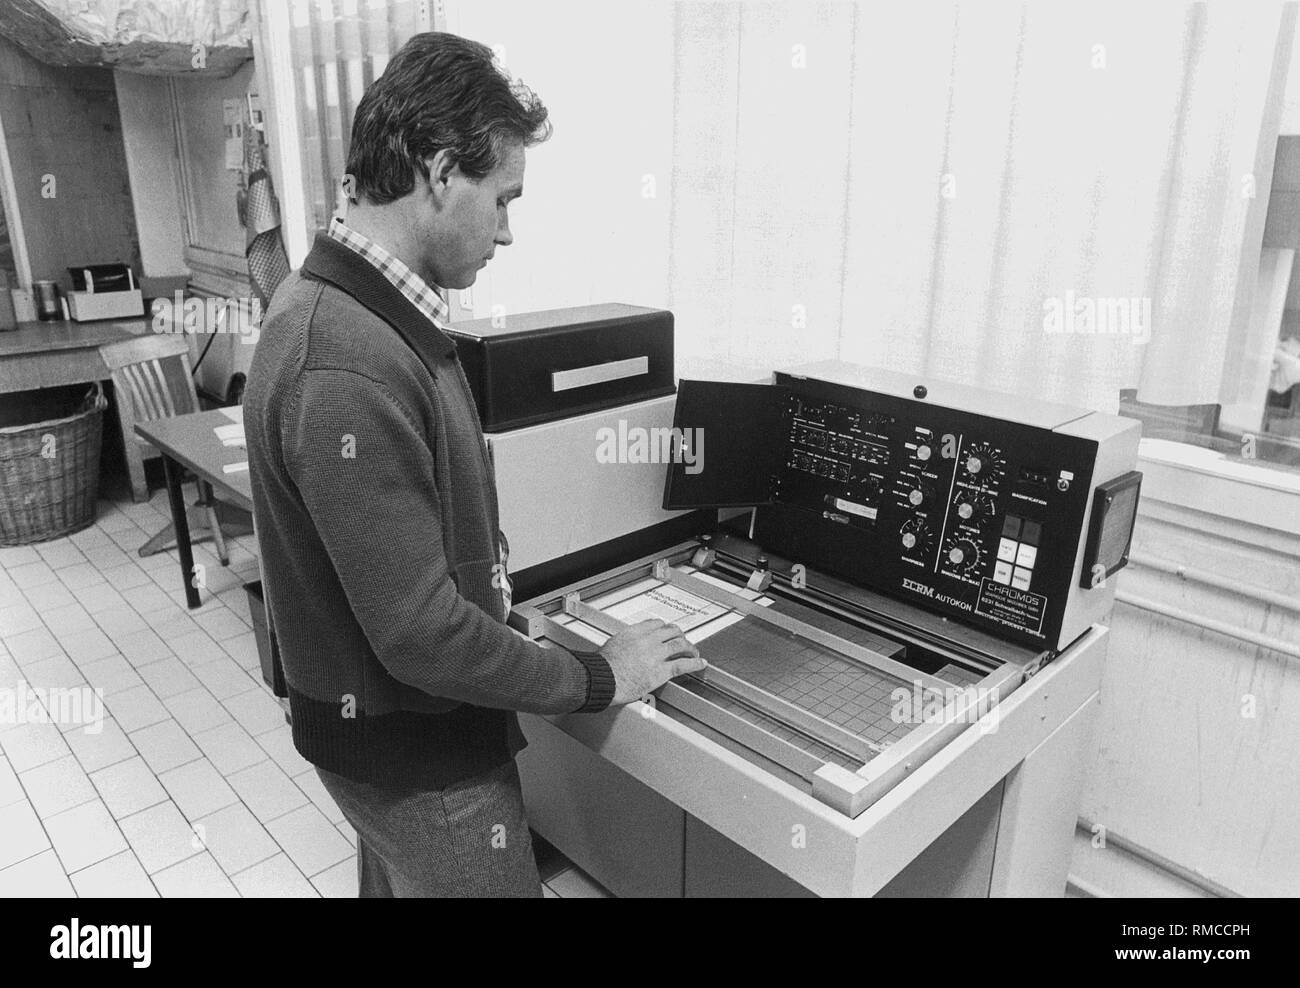 Employees of the repro department at an Autocon scanner. - Stock Image